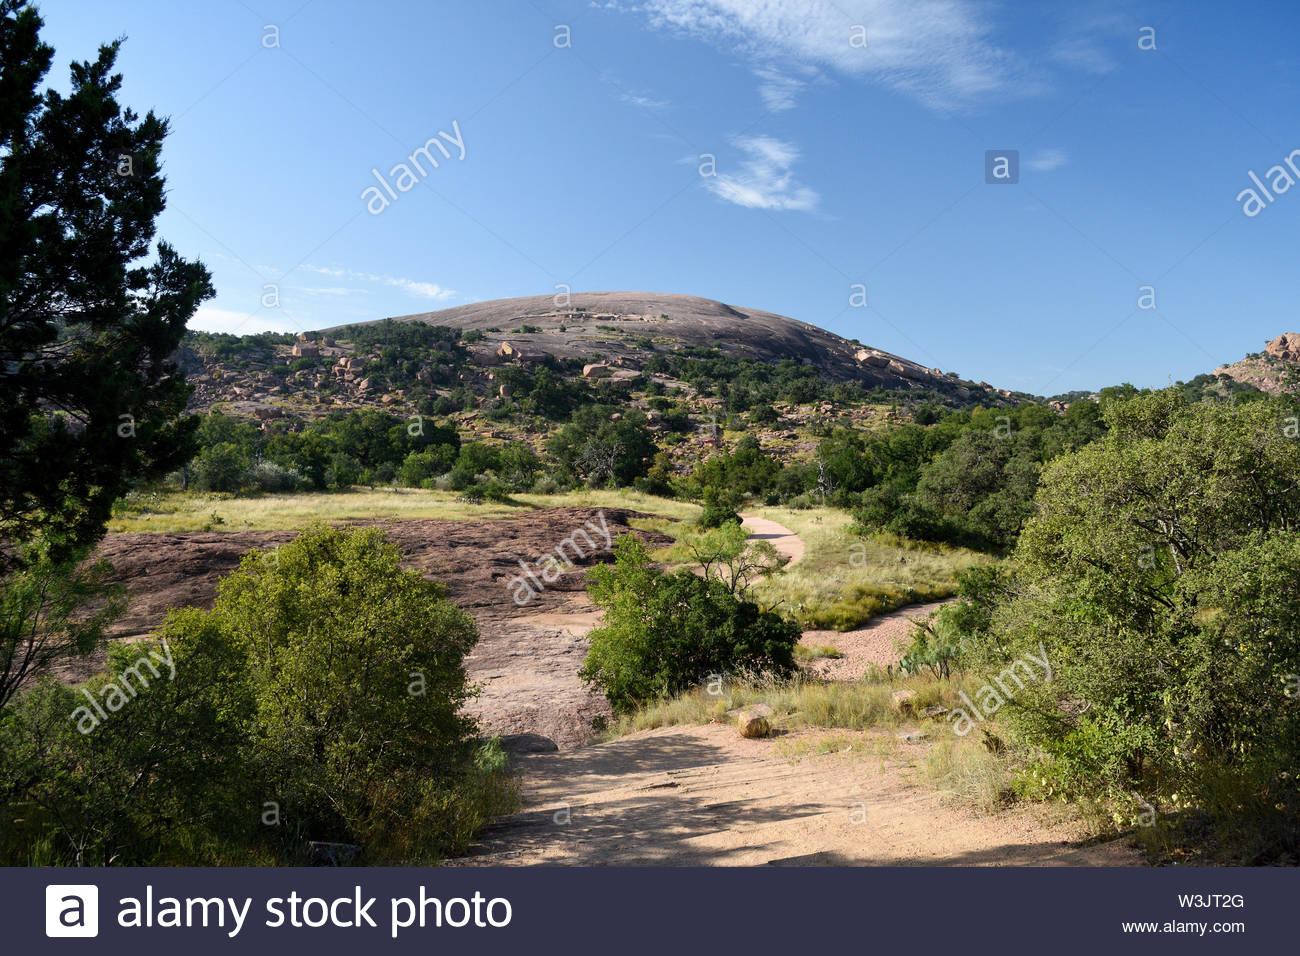 July in Texas. Summer Day at Enchanted Rock State Natural Area in the Texas Hill Country. Hot Summer Day in Texas. West of Austin in the Hill Country. - Stock Image